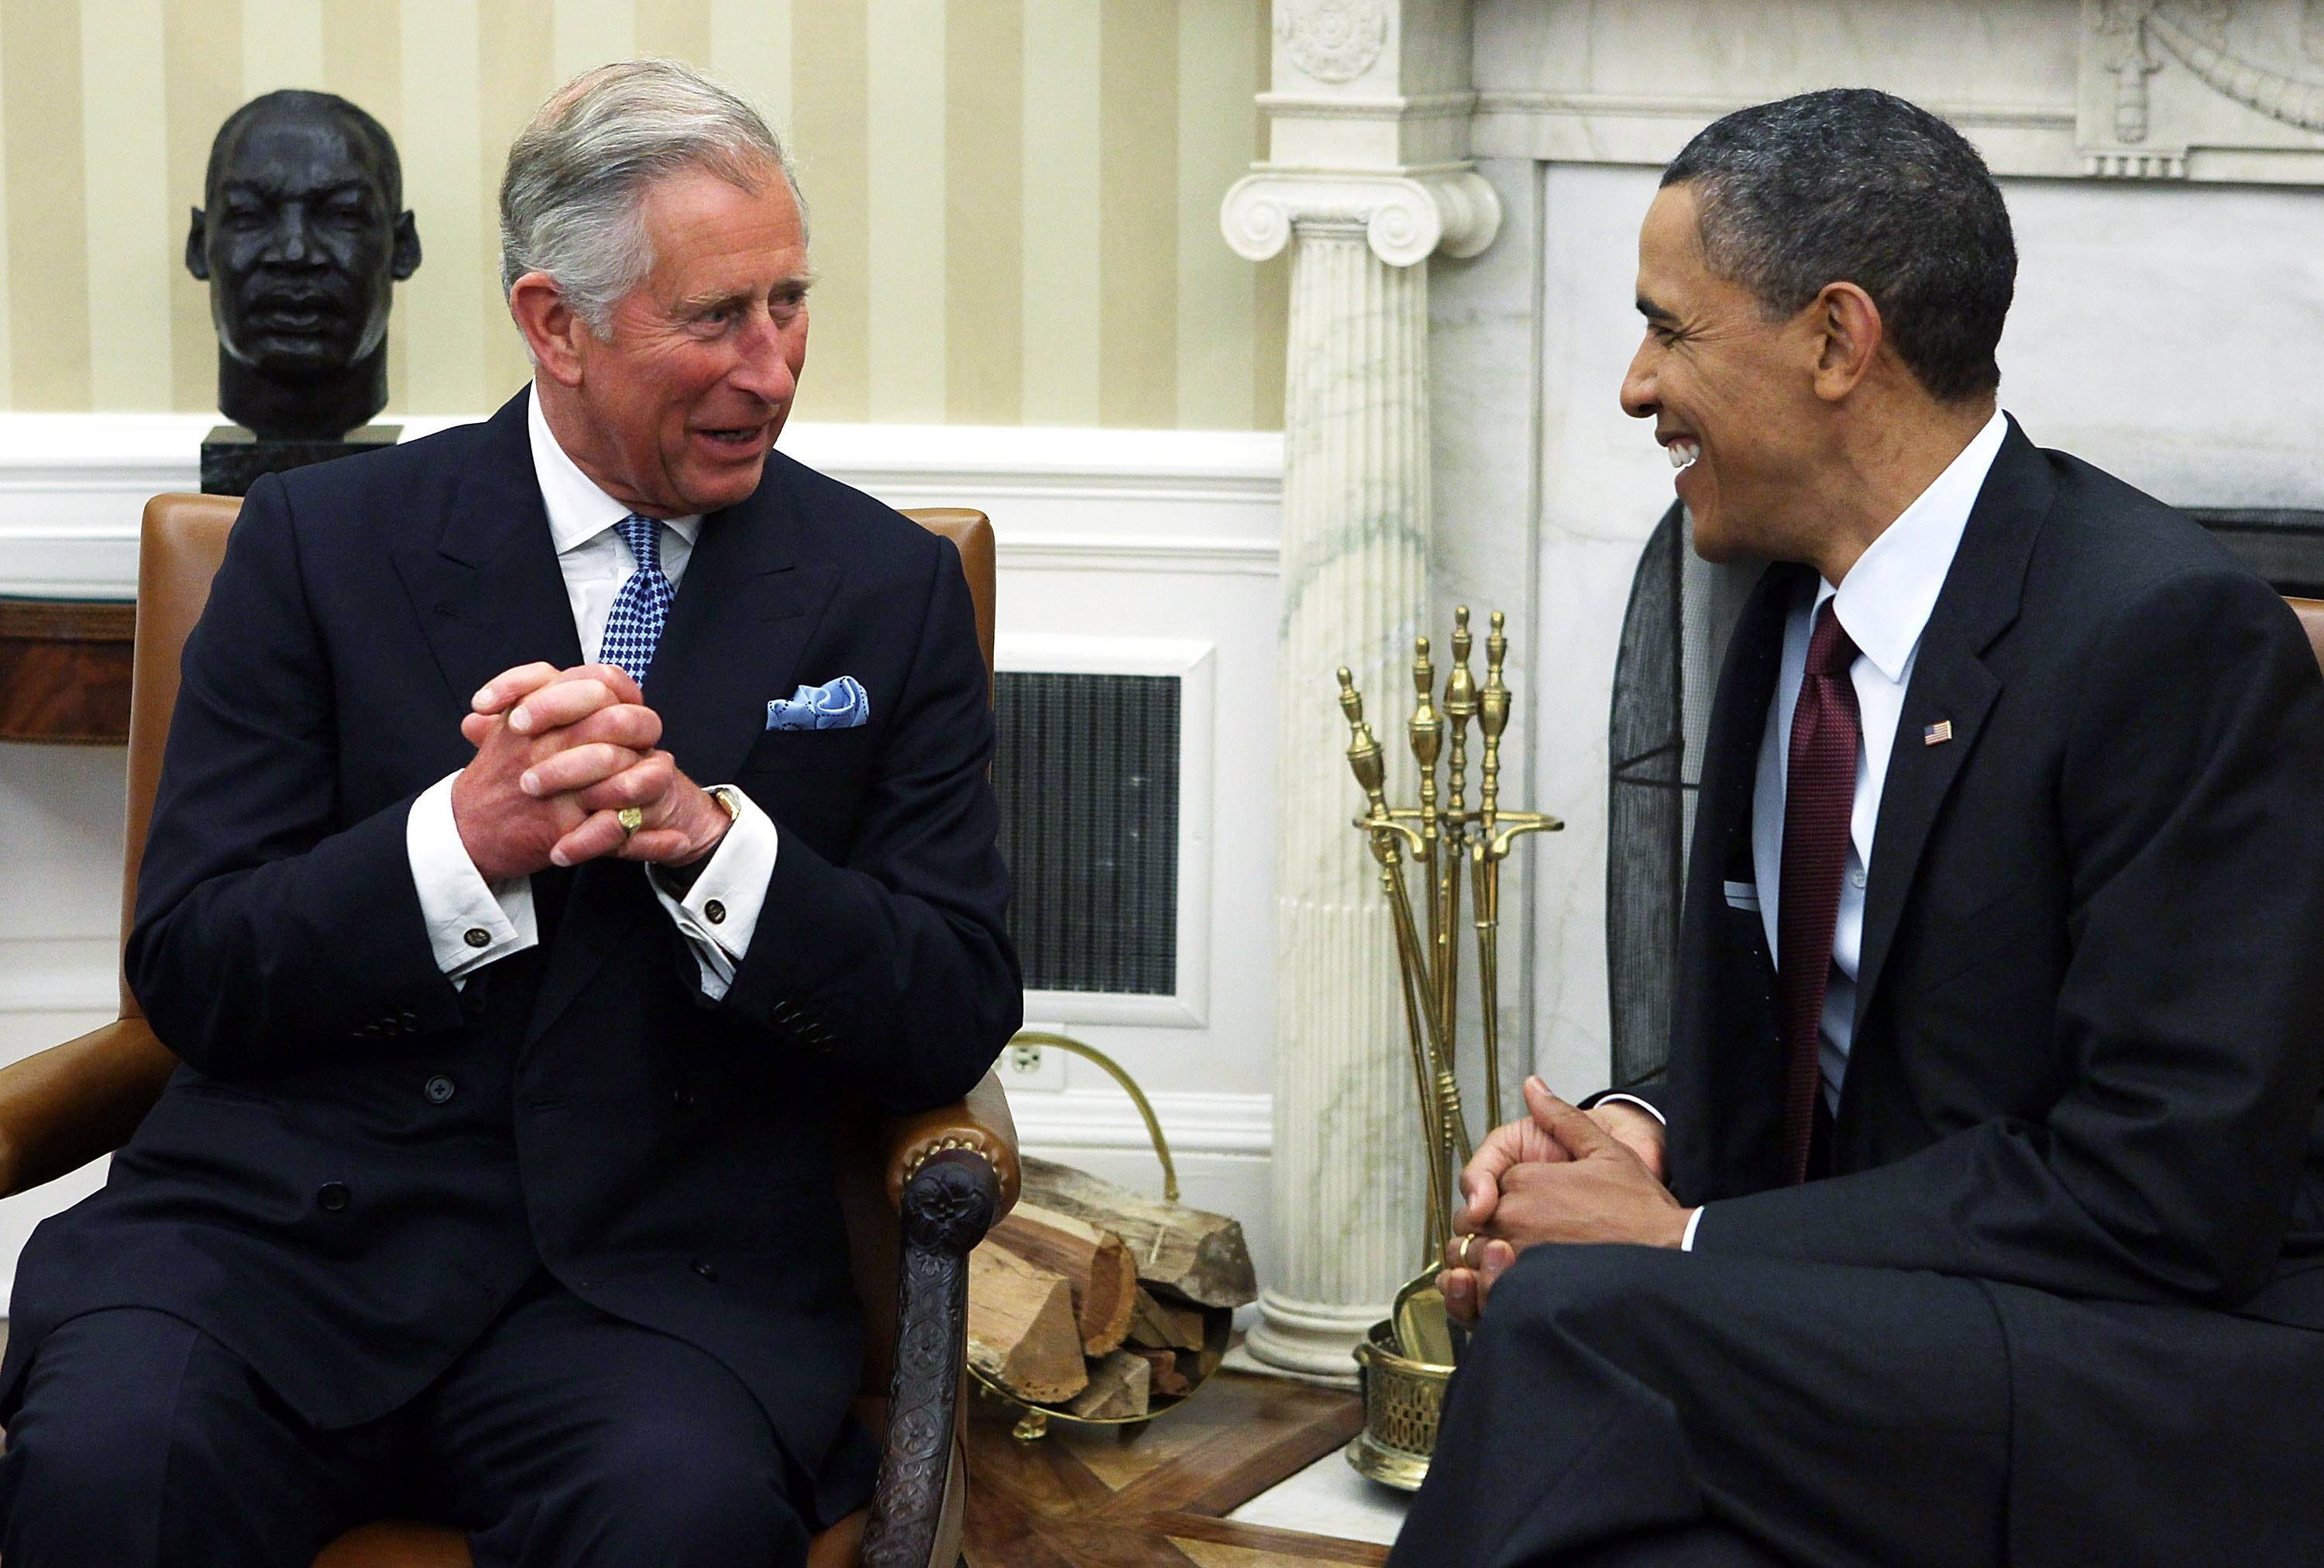 prince charles and barack obama chat in the white house